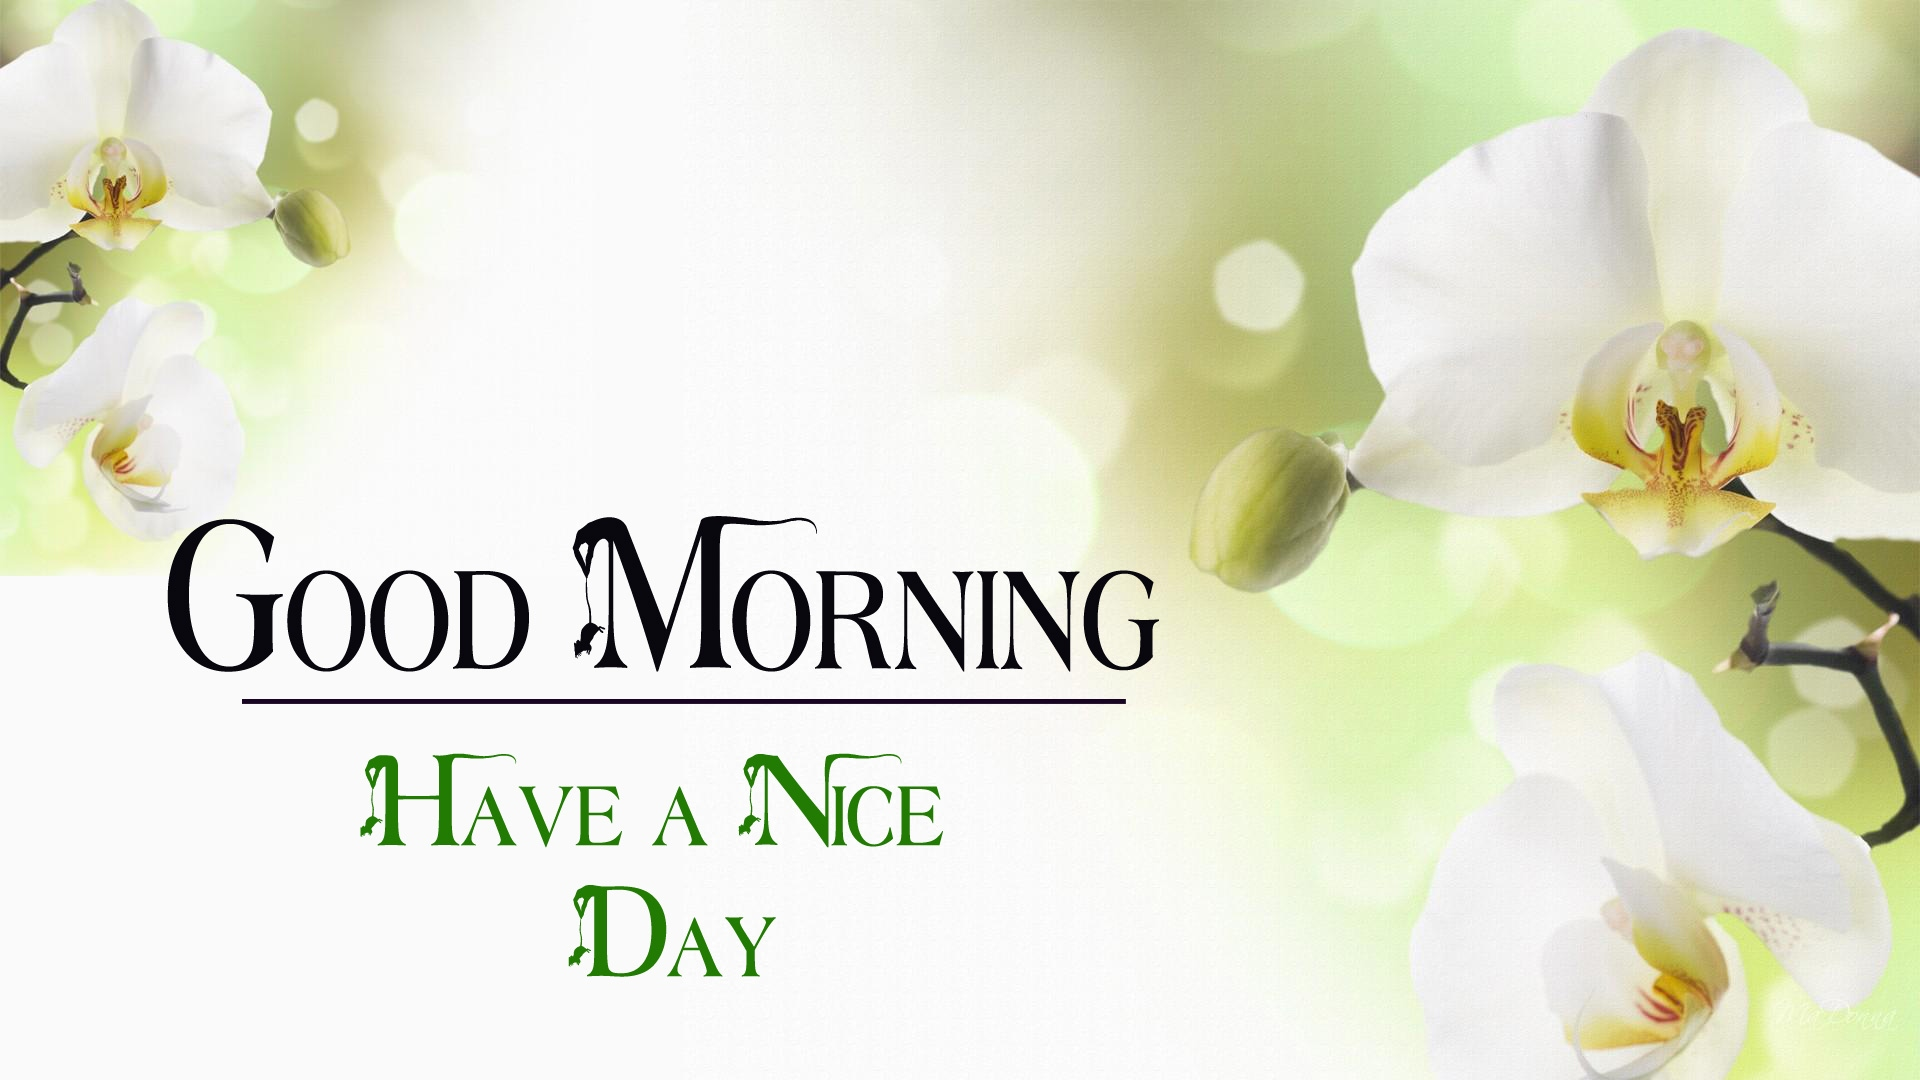 good morning images wallpaper for facebook 2